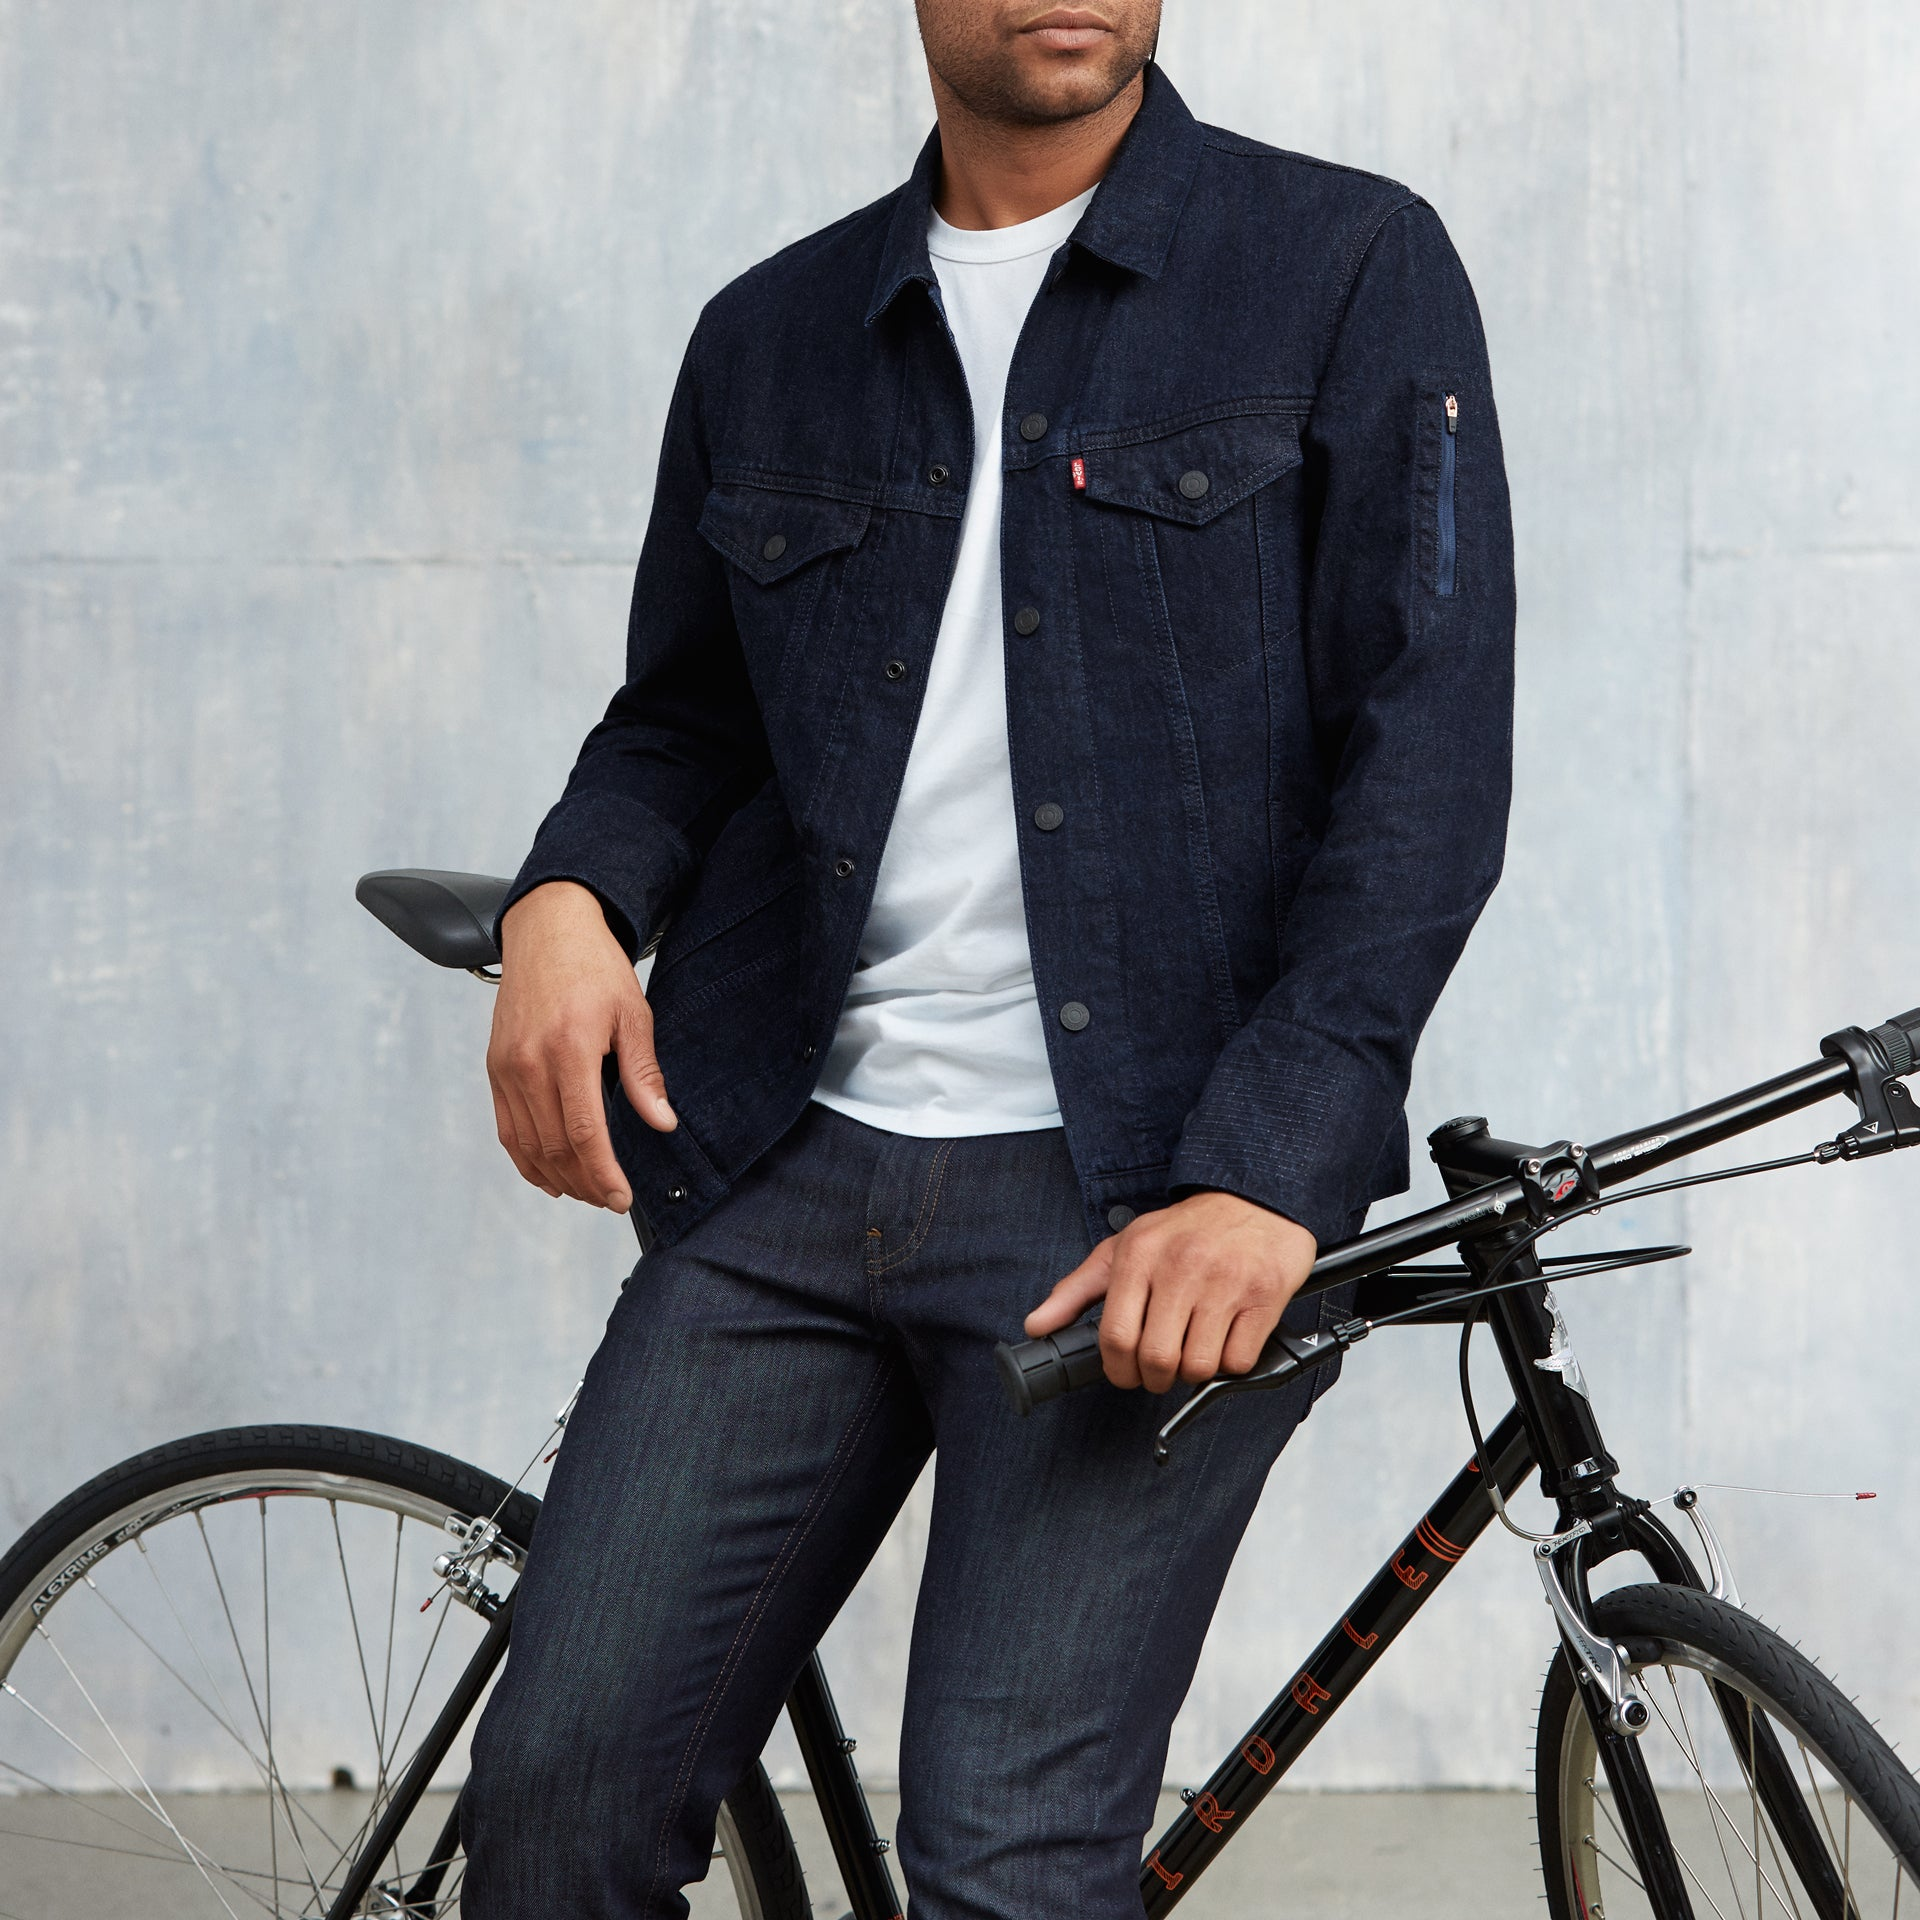 Levi's new Bluetooth-connected jacket seems both cool and weird